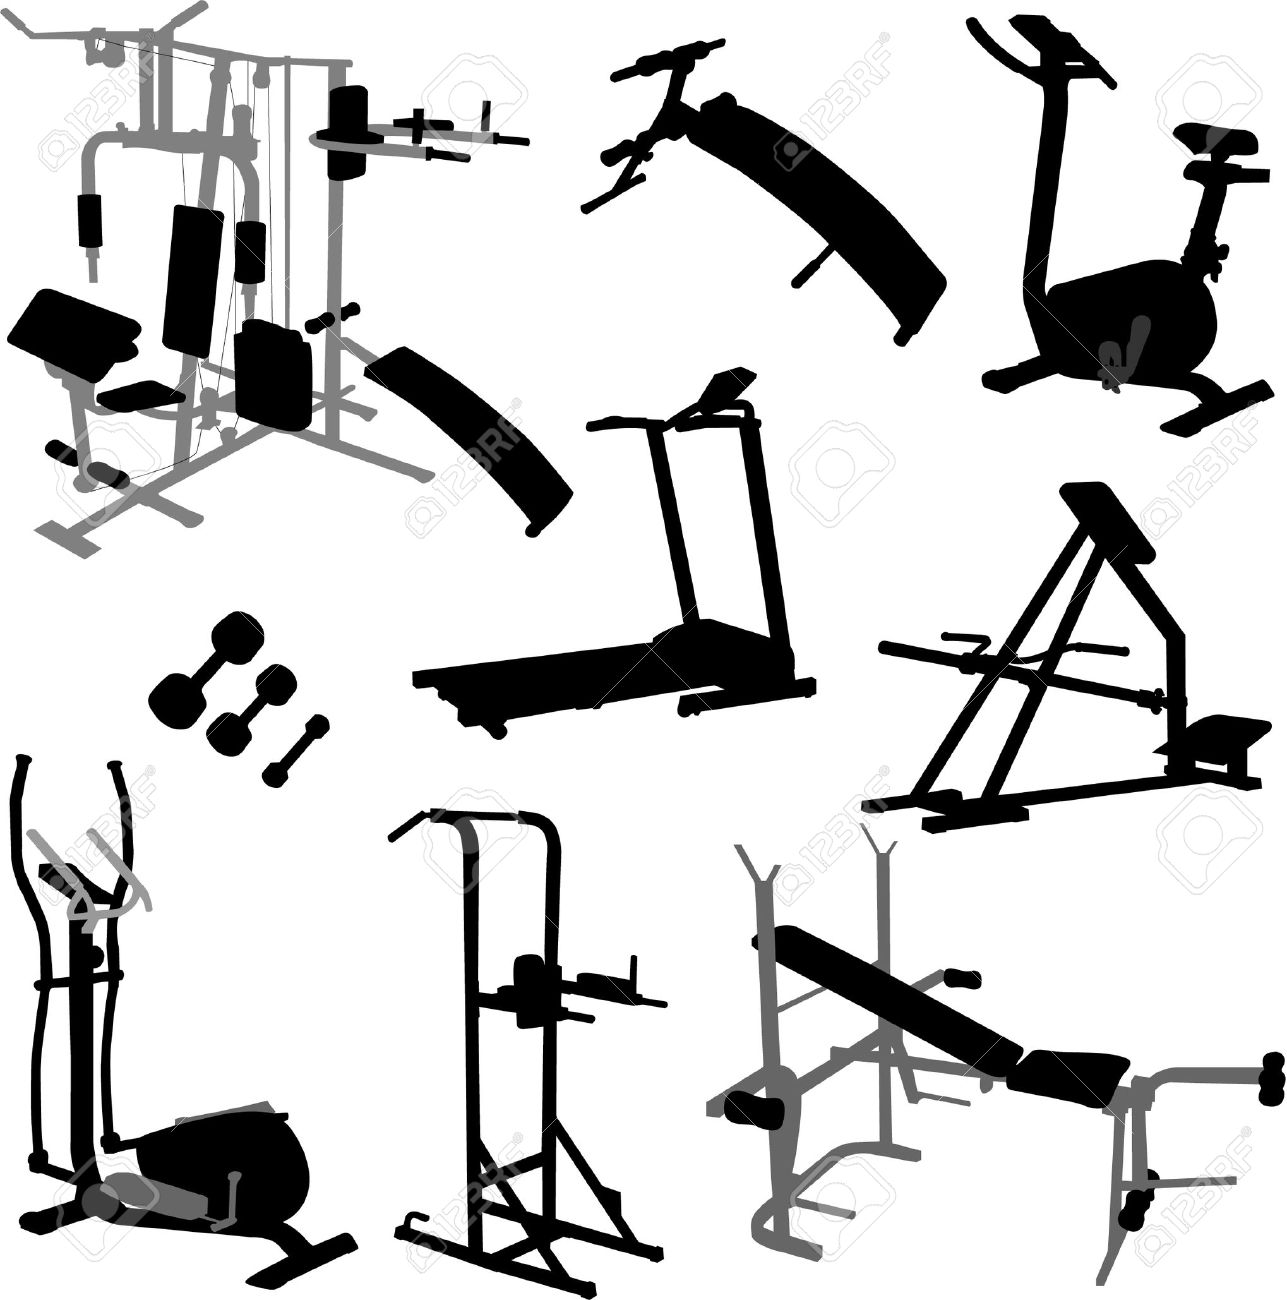 Work out equipment clipart banner free Work out equipment clipart - ClipartFest banner free